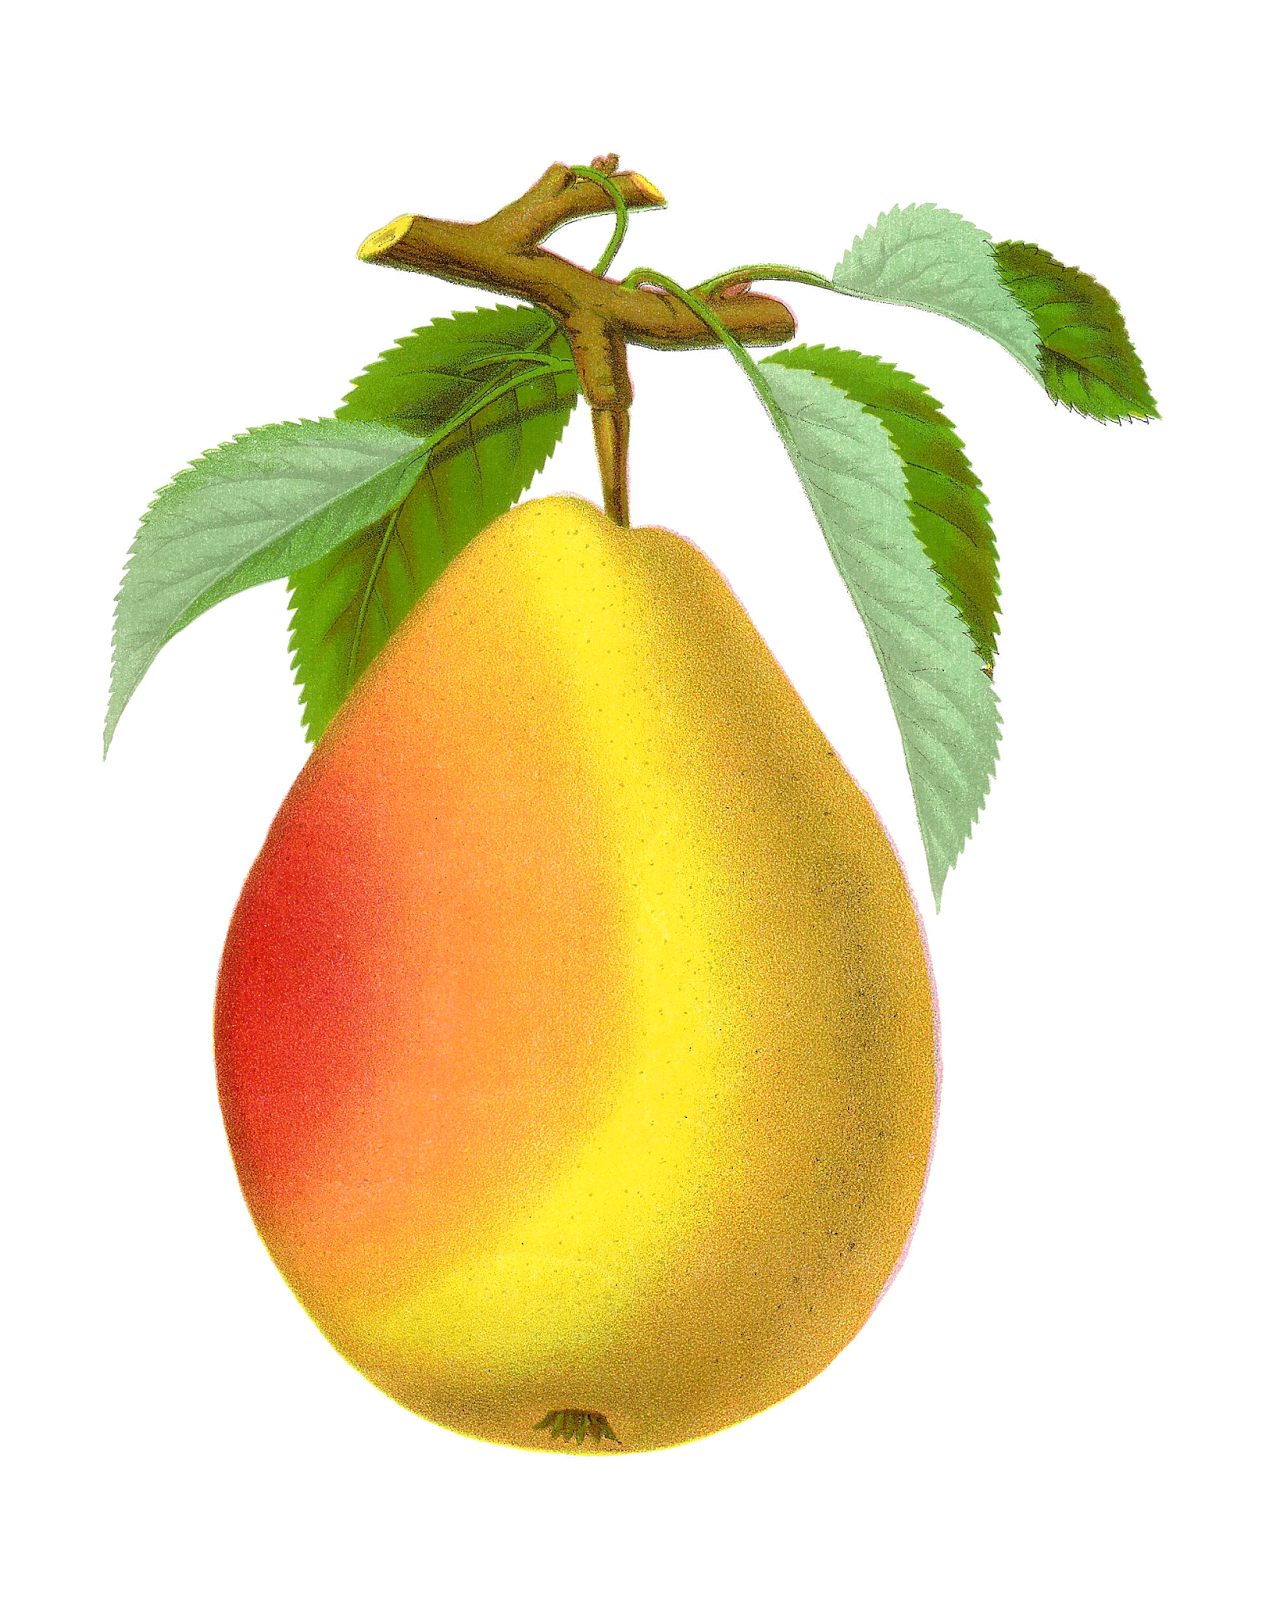 Pear clipart fruit seed. Antique images free digital